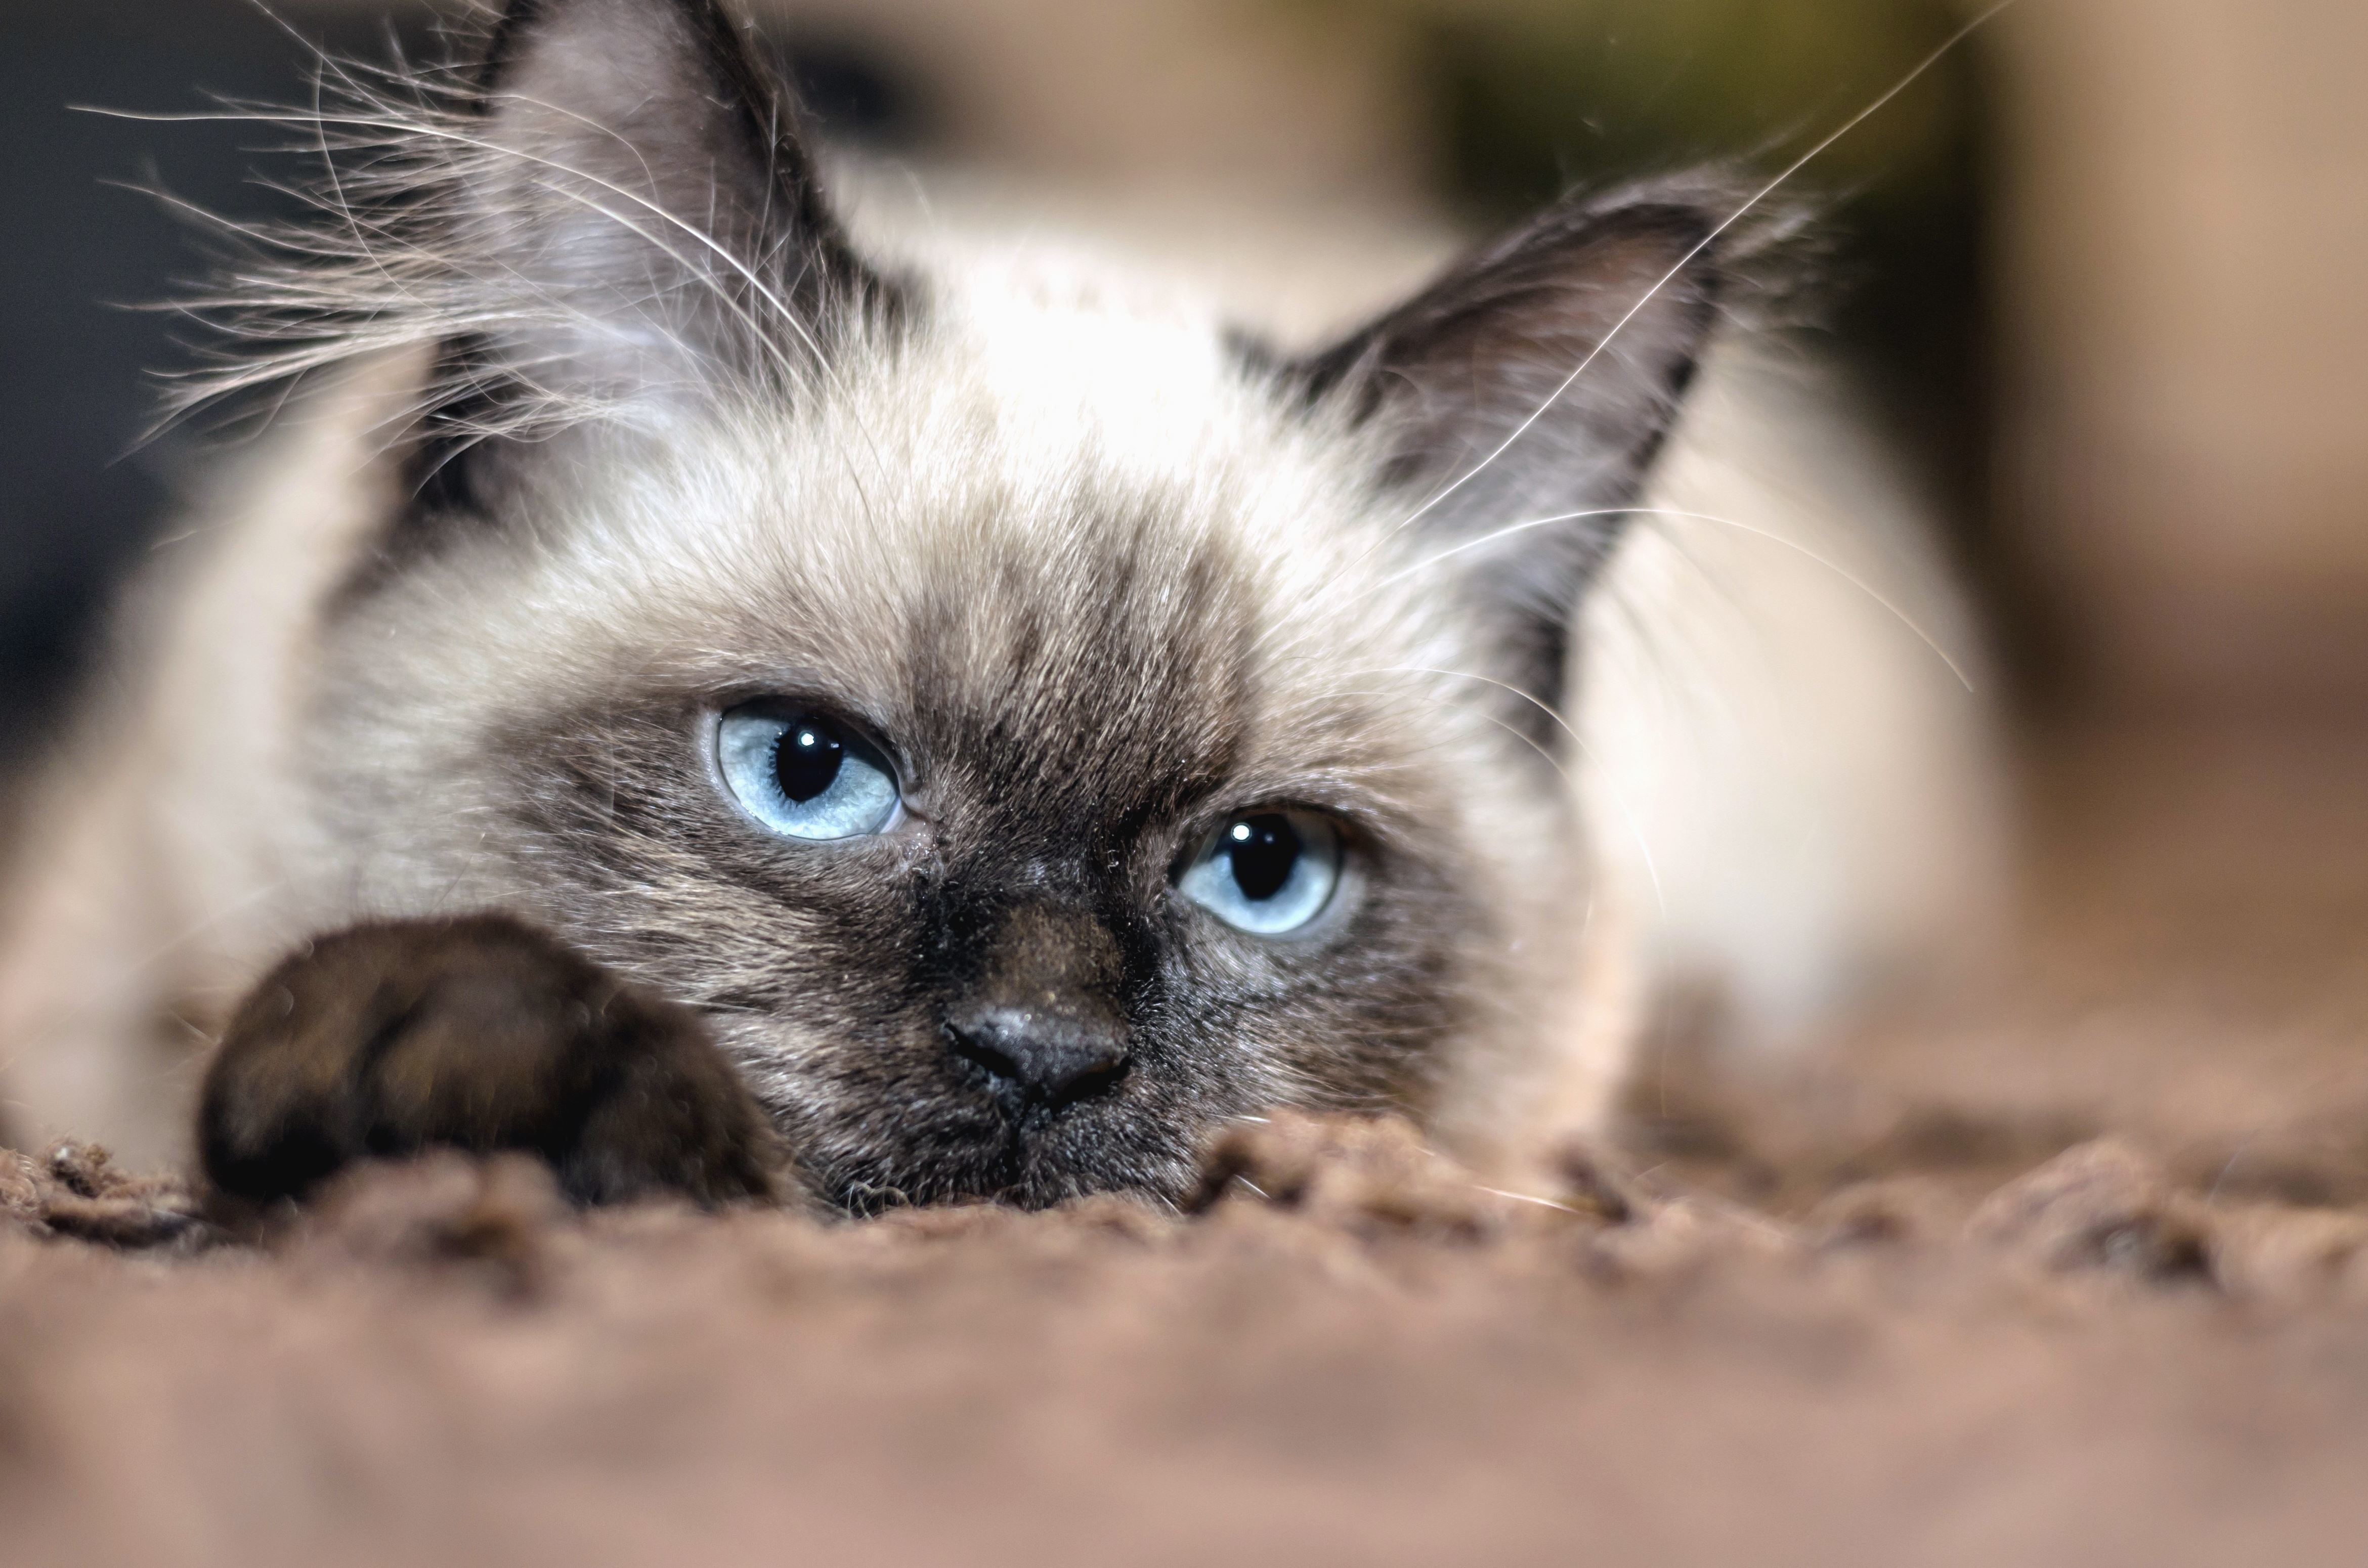 Free picture cat pet whiskers ears eyes blue fur